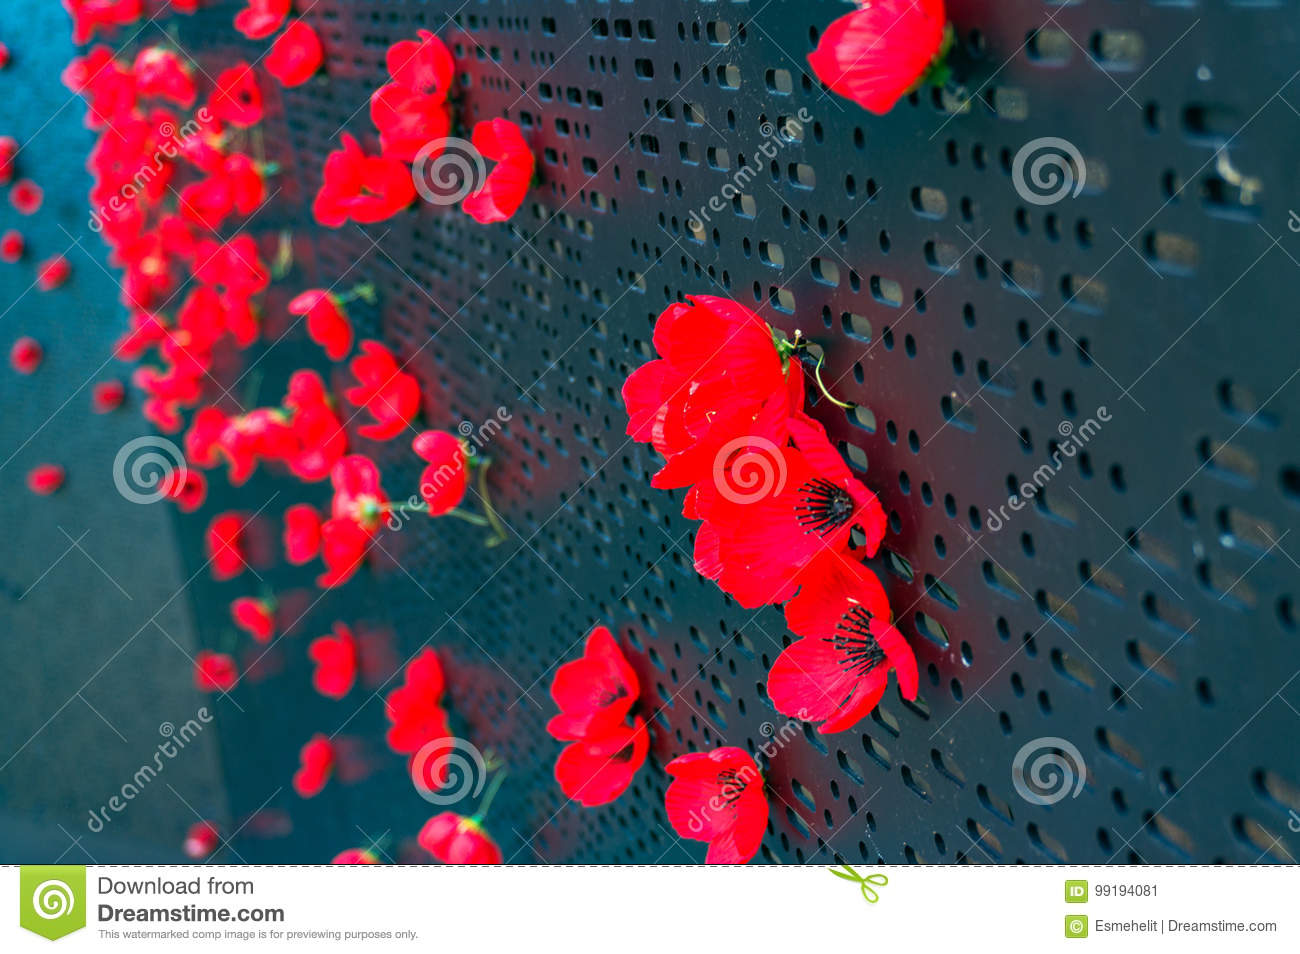 Remembrance day poppy flowers stock image image of black veterans download remembrance day poppy flowers stock image image of black veterans 99194081 mightylinksfo